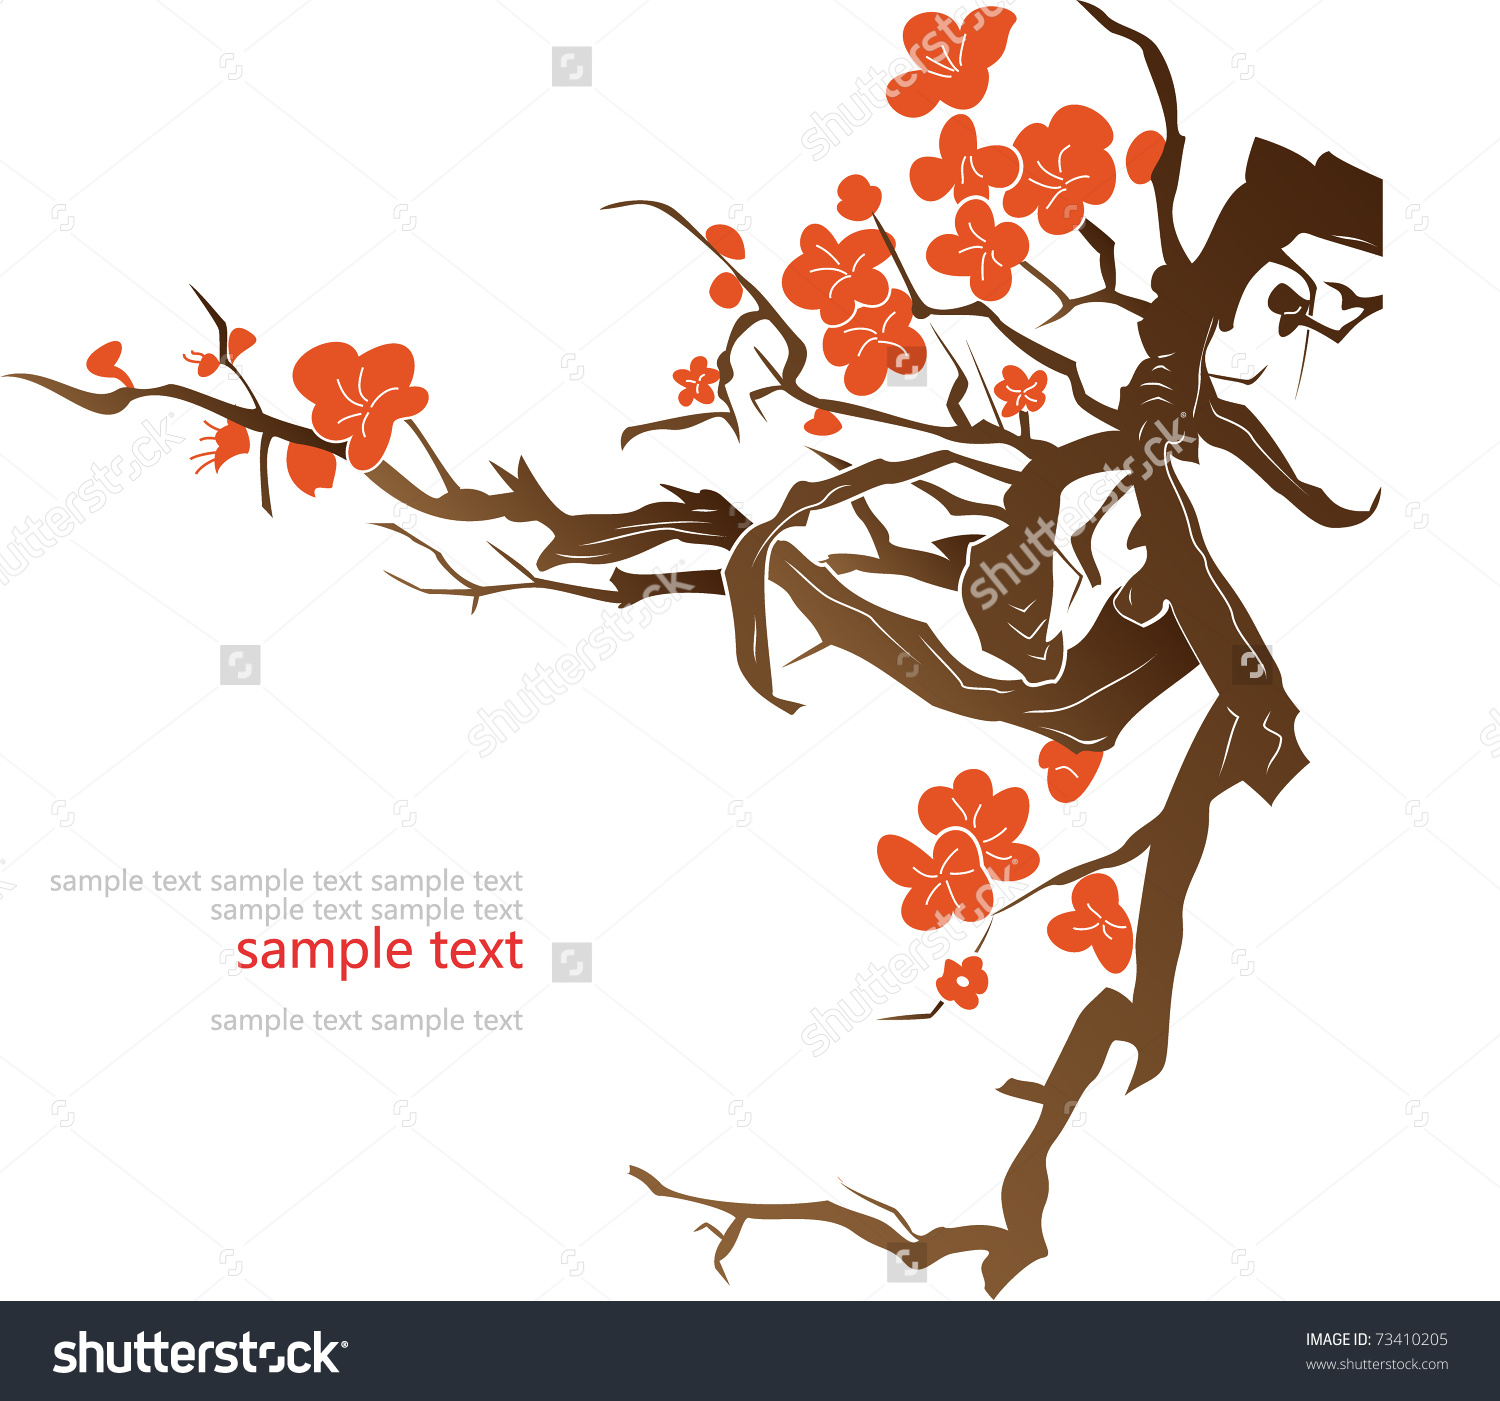 Plum Blossom Vector Background Stock Vector 73410205.